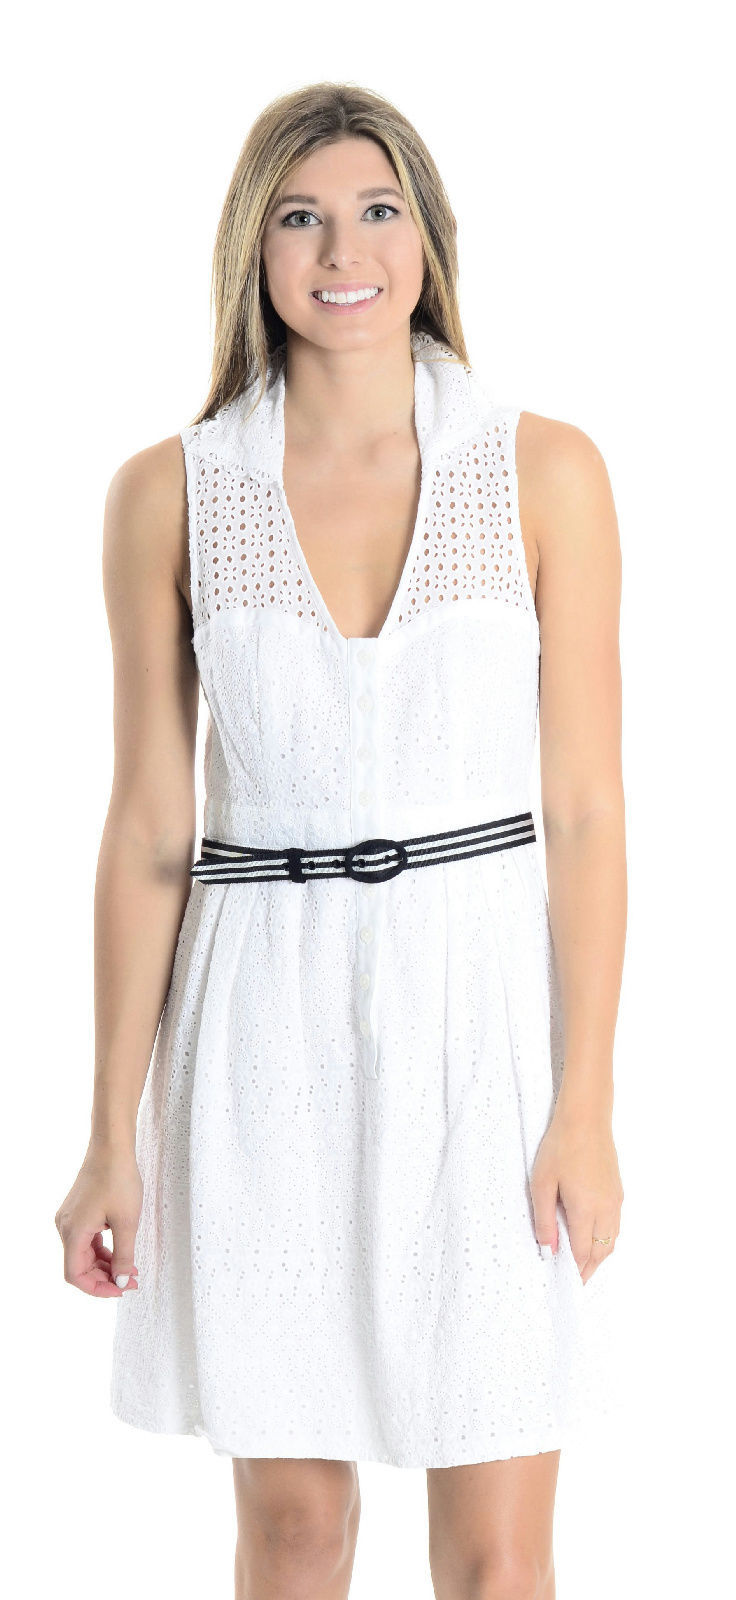 6 Nanette Lepore White Eyelet Lace Sweetheart Neckline Collared Sleeveless Dress